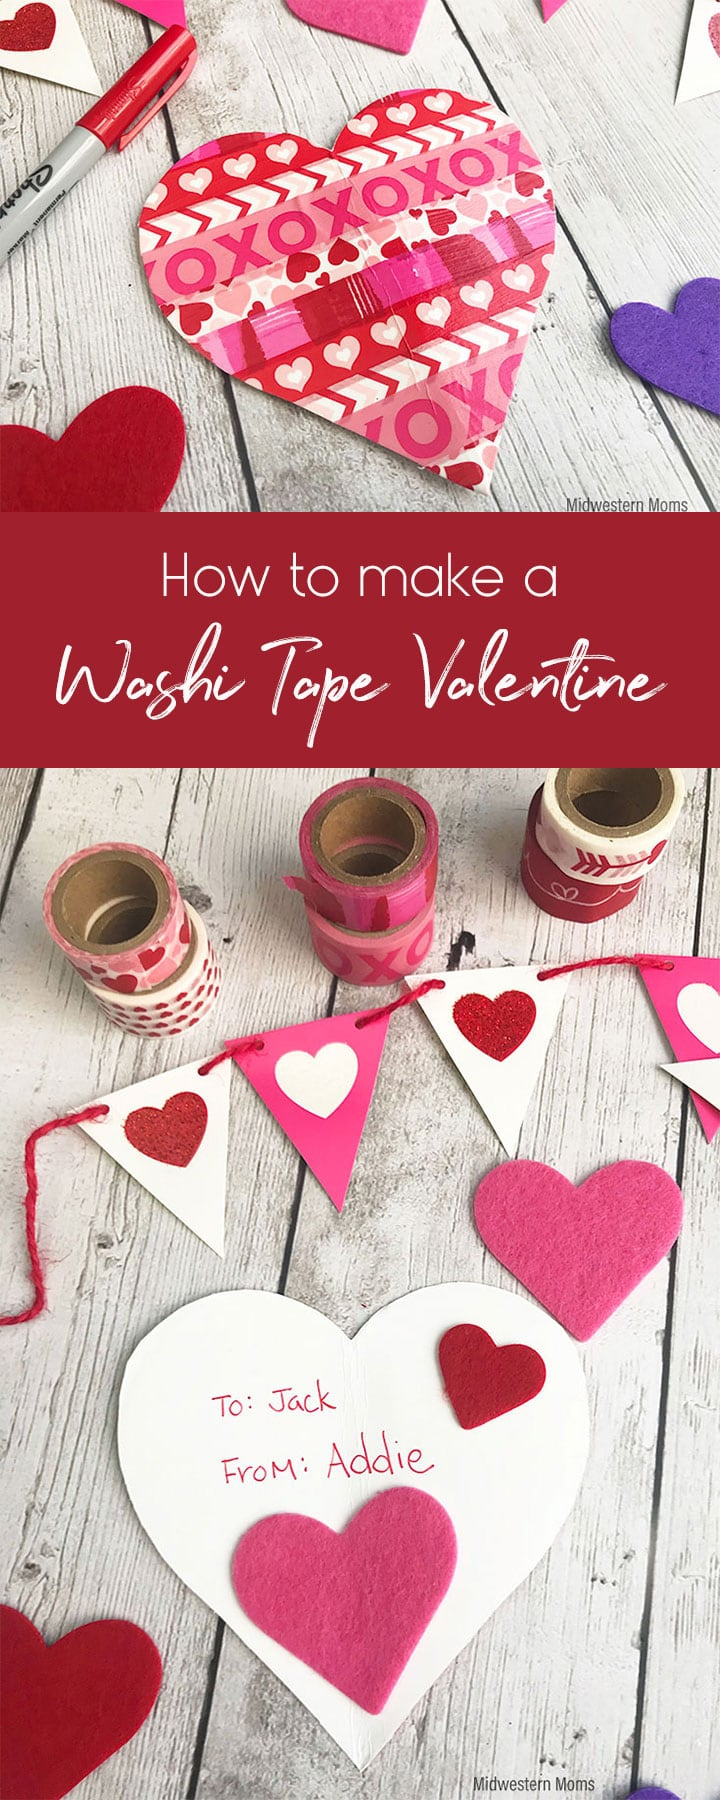 Want to get crafty with the kids for Valentine's Day? Learn how to make a simple washi tape valentine card that the kids will love to create for friends and family!